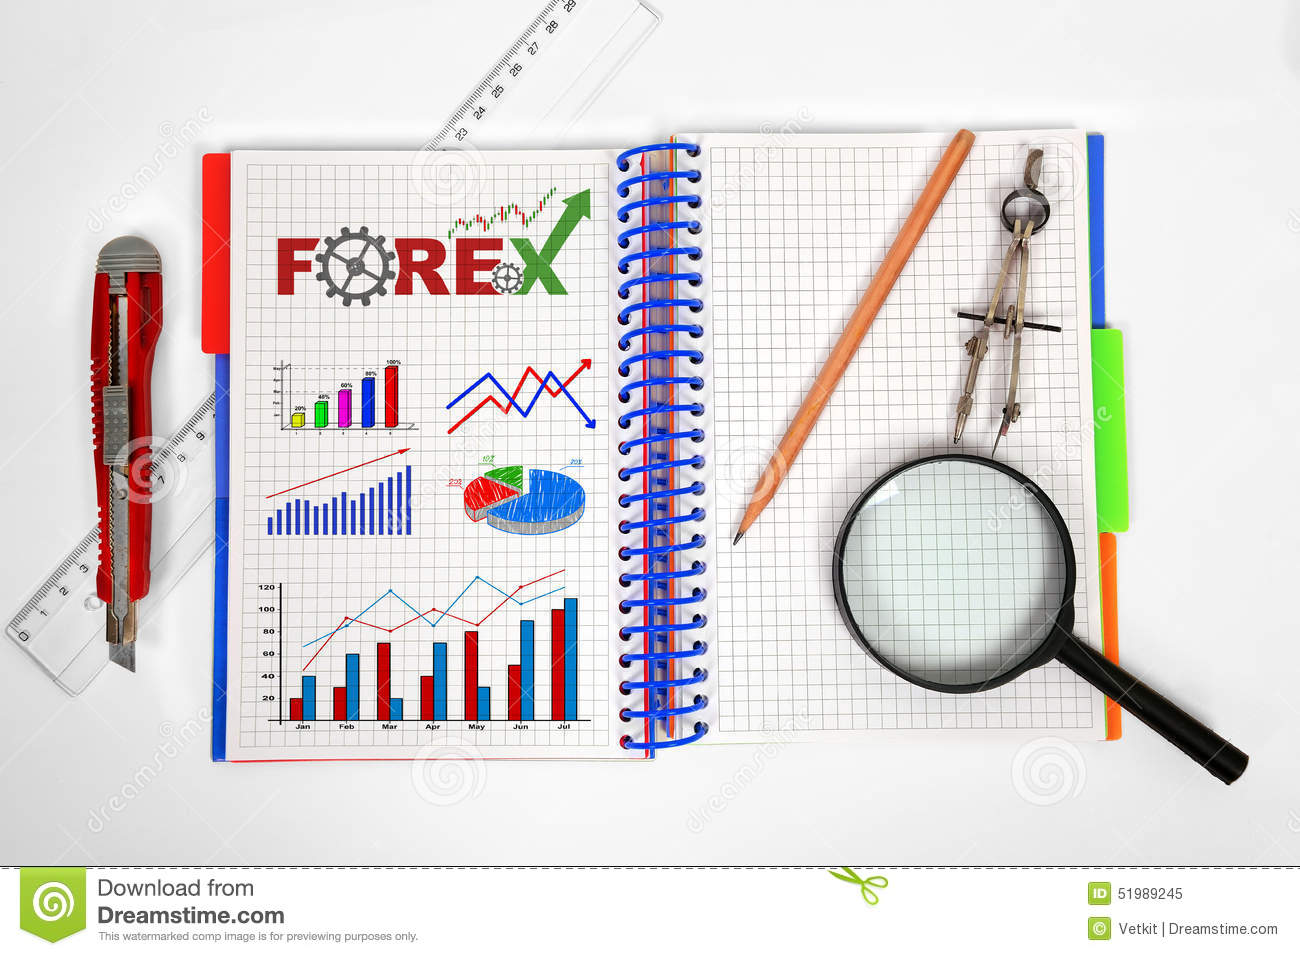 Forex charting tools